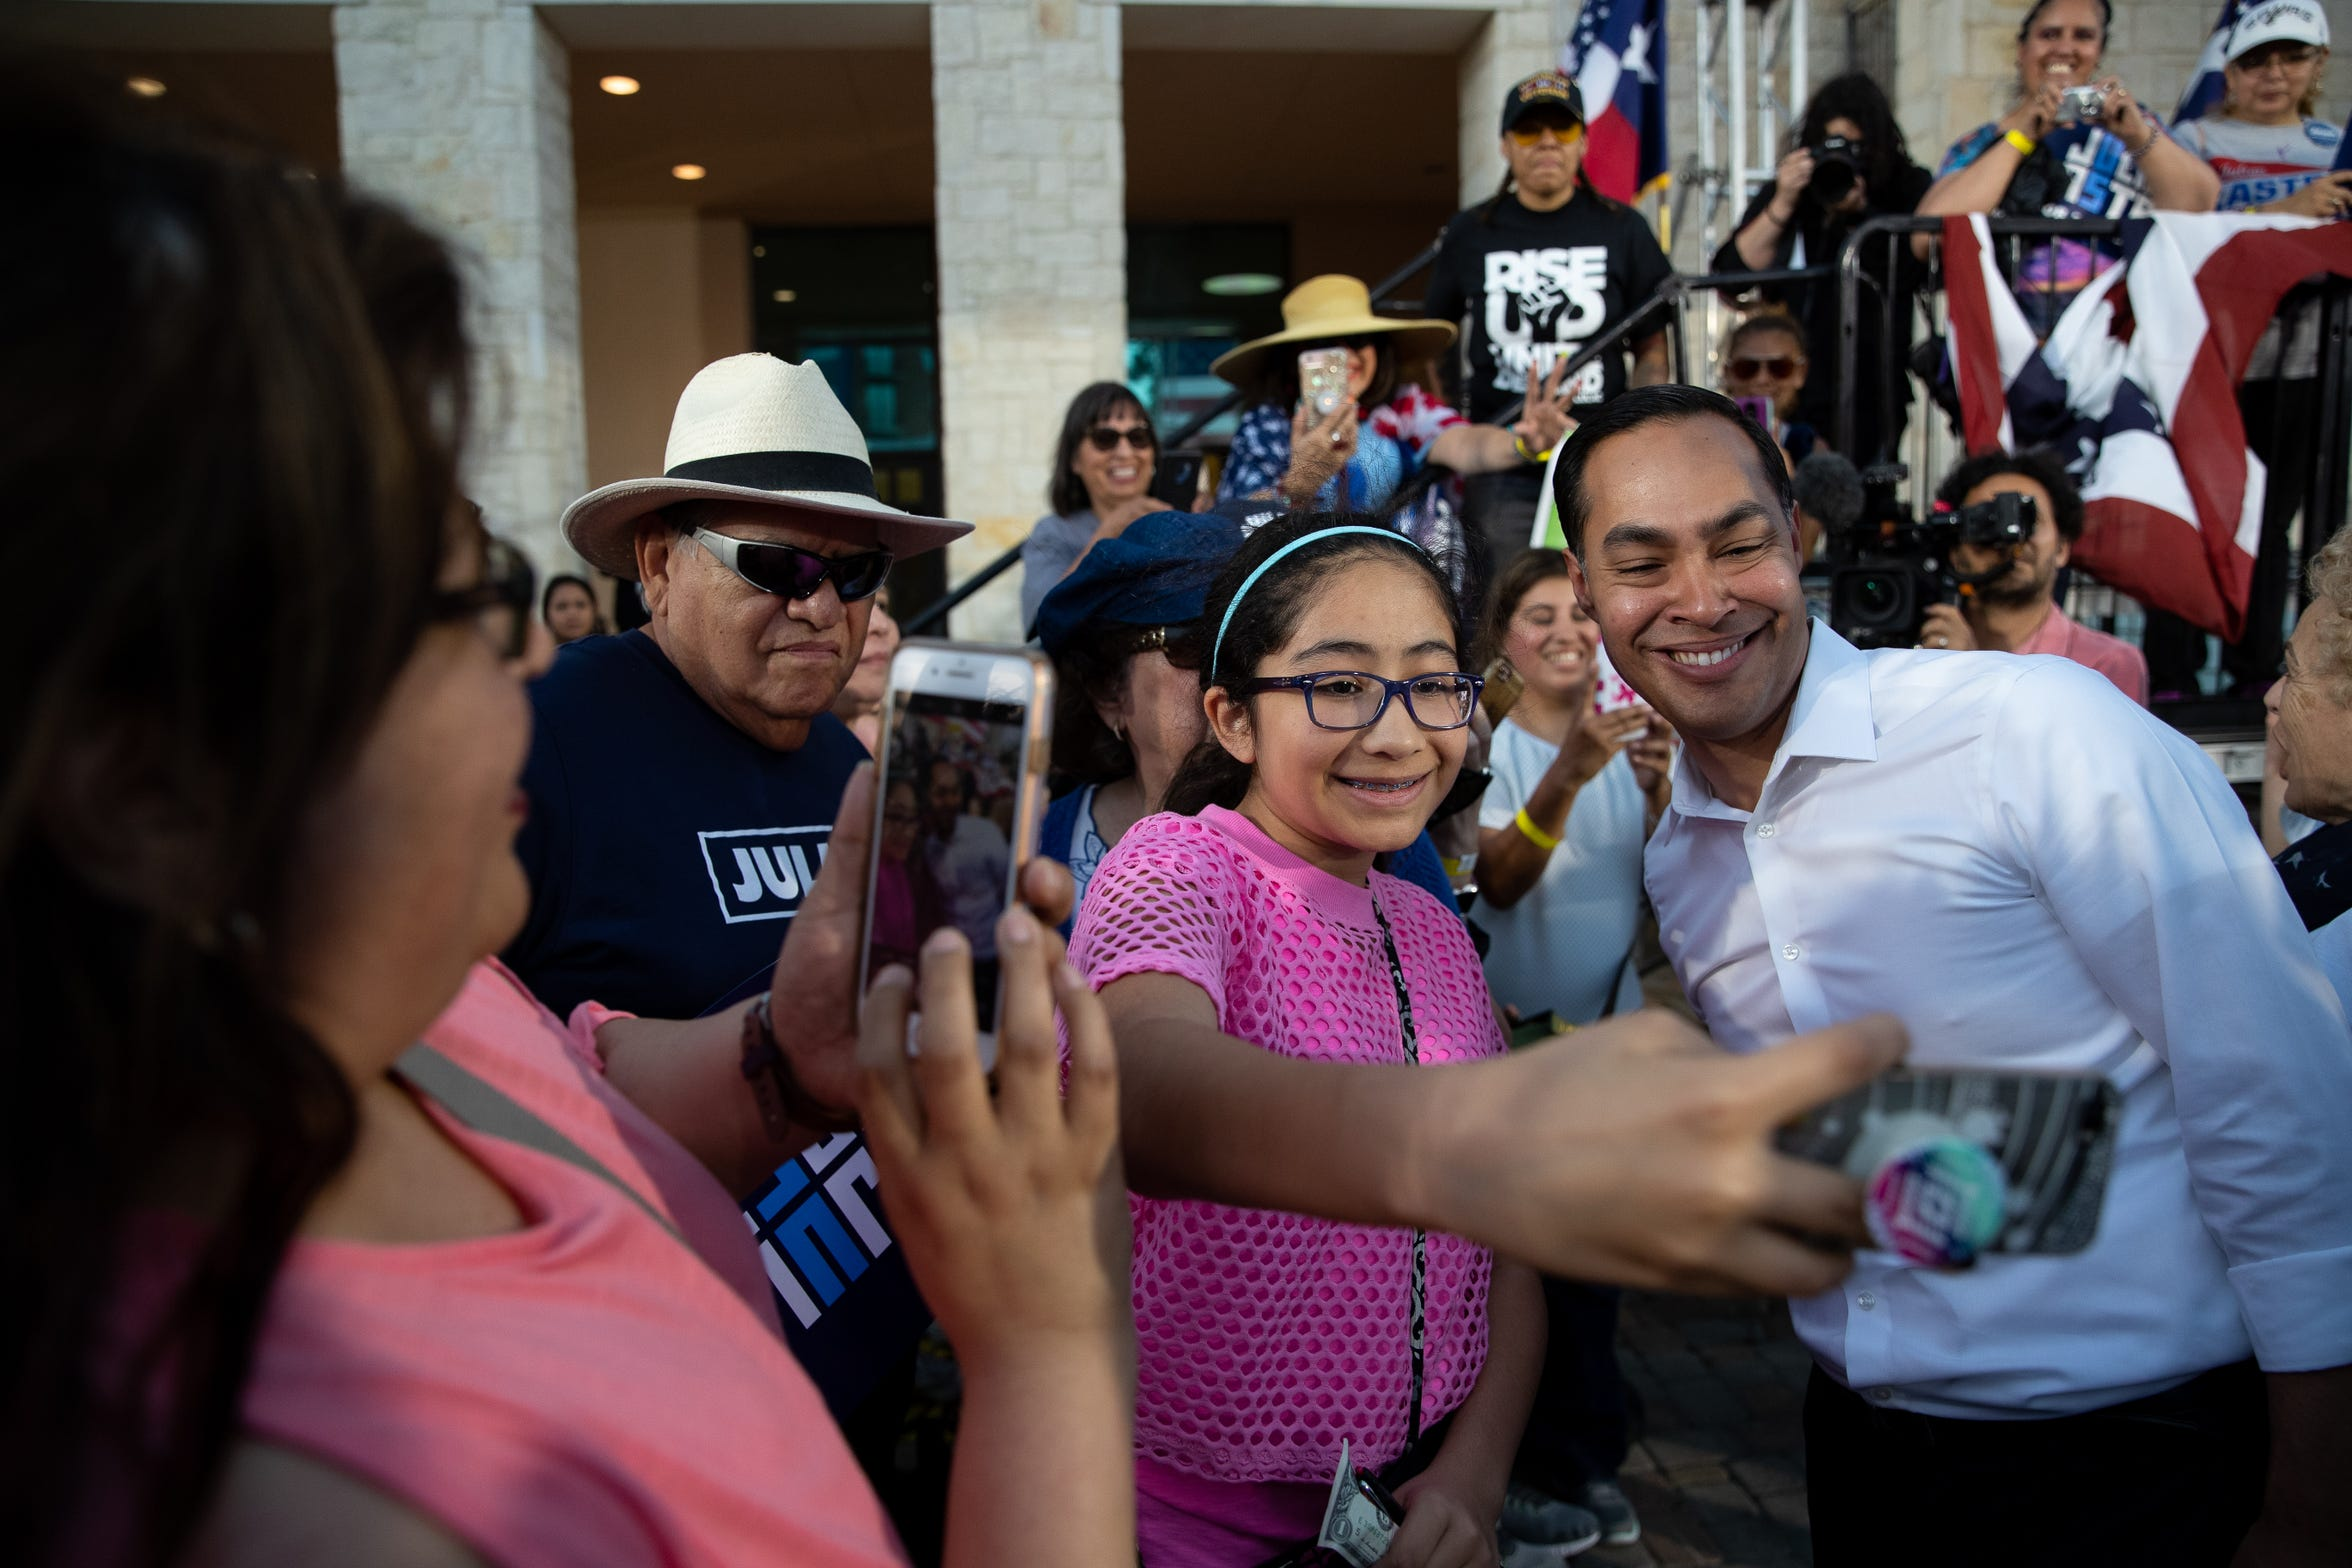 Presidential candidate Julian Castro makes a selfie with a young girl after his People First rally in San Antonio, Texas on Wednesday, April 10, 2019. Earlier in the day President Trump hosted a fundraiser in San Antonio.